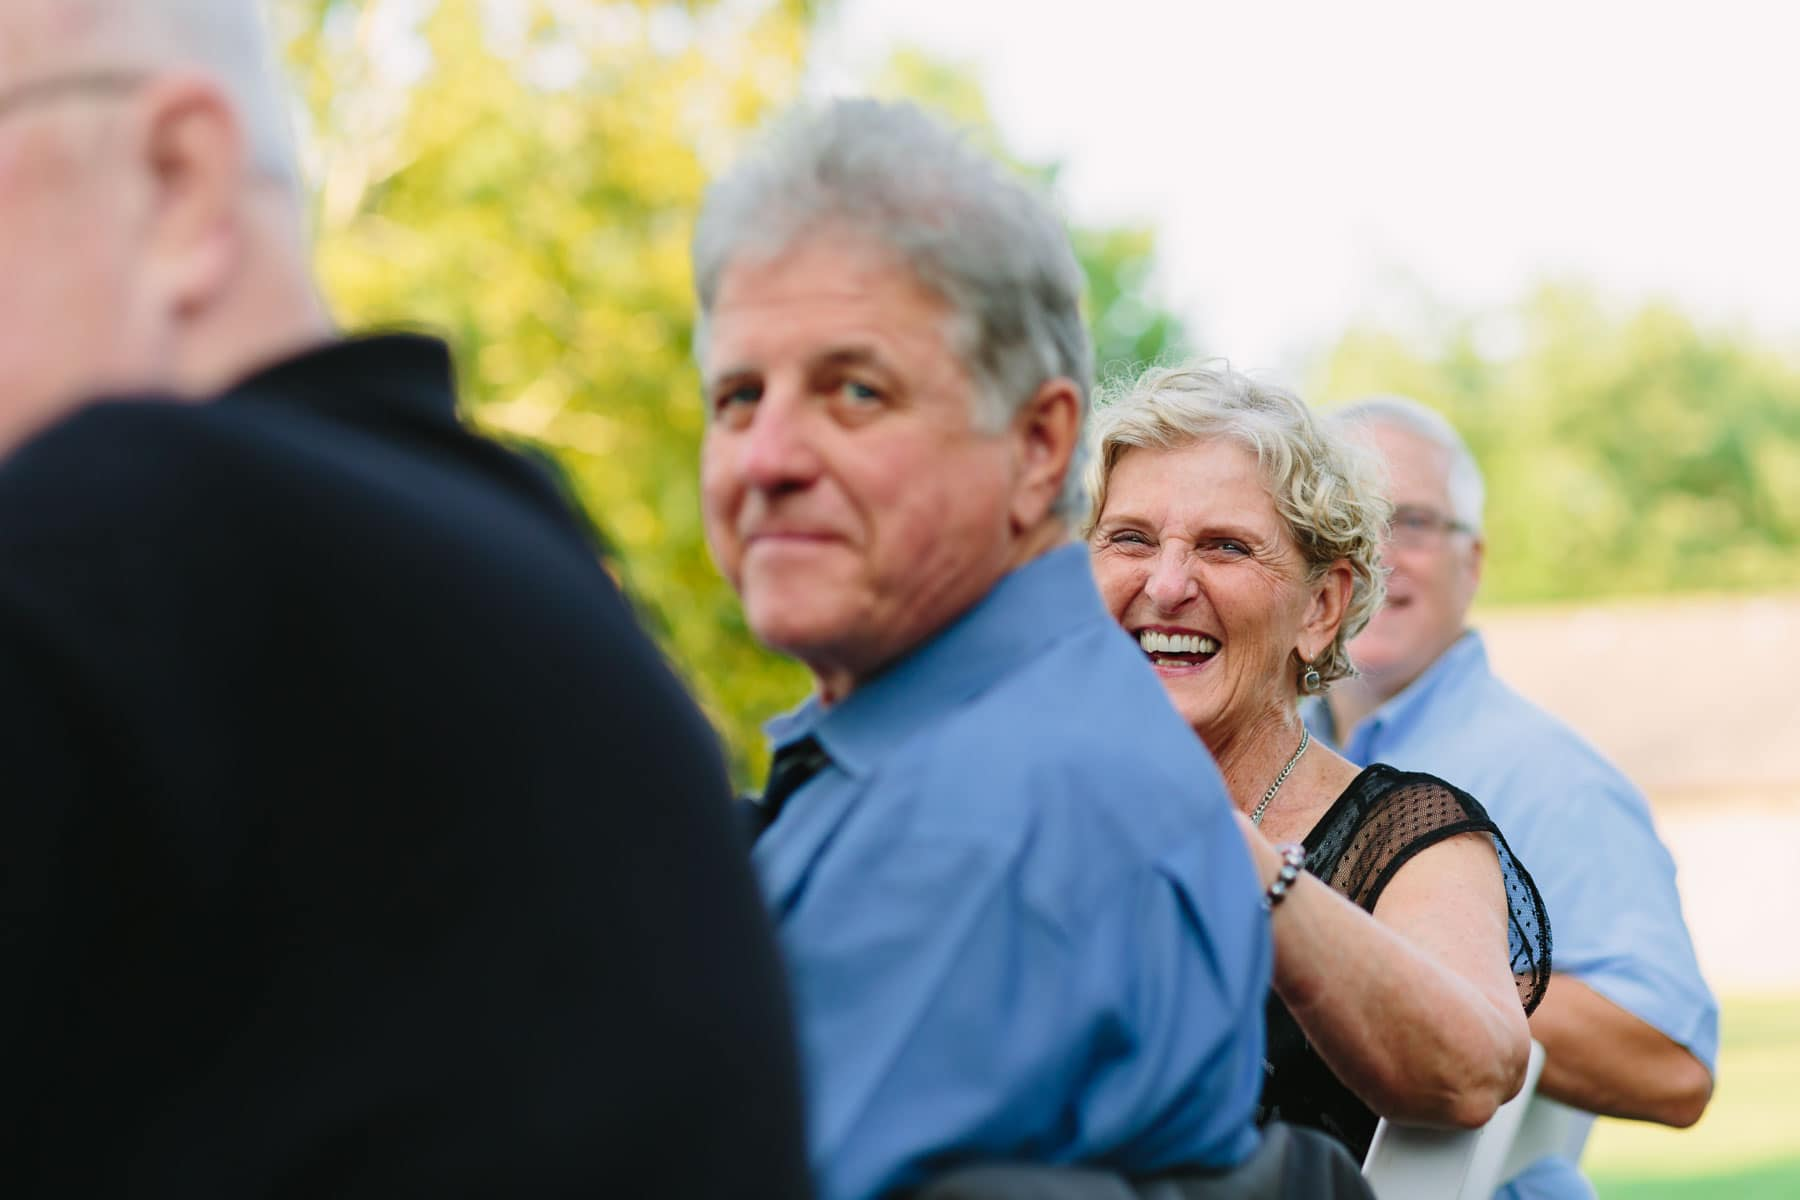 A female guest laughs during a speech in these backyard wedding photos.